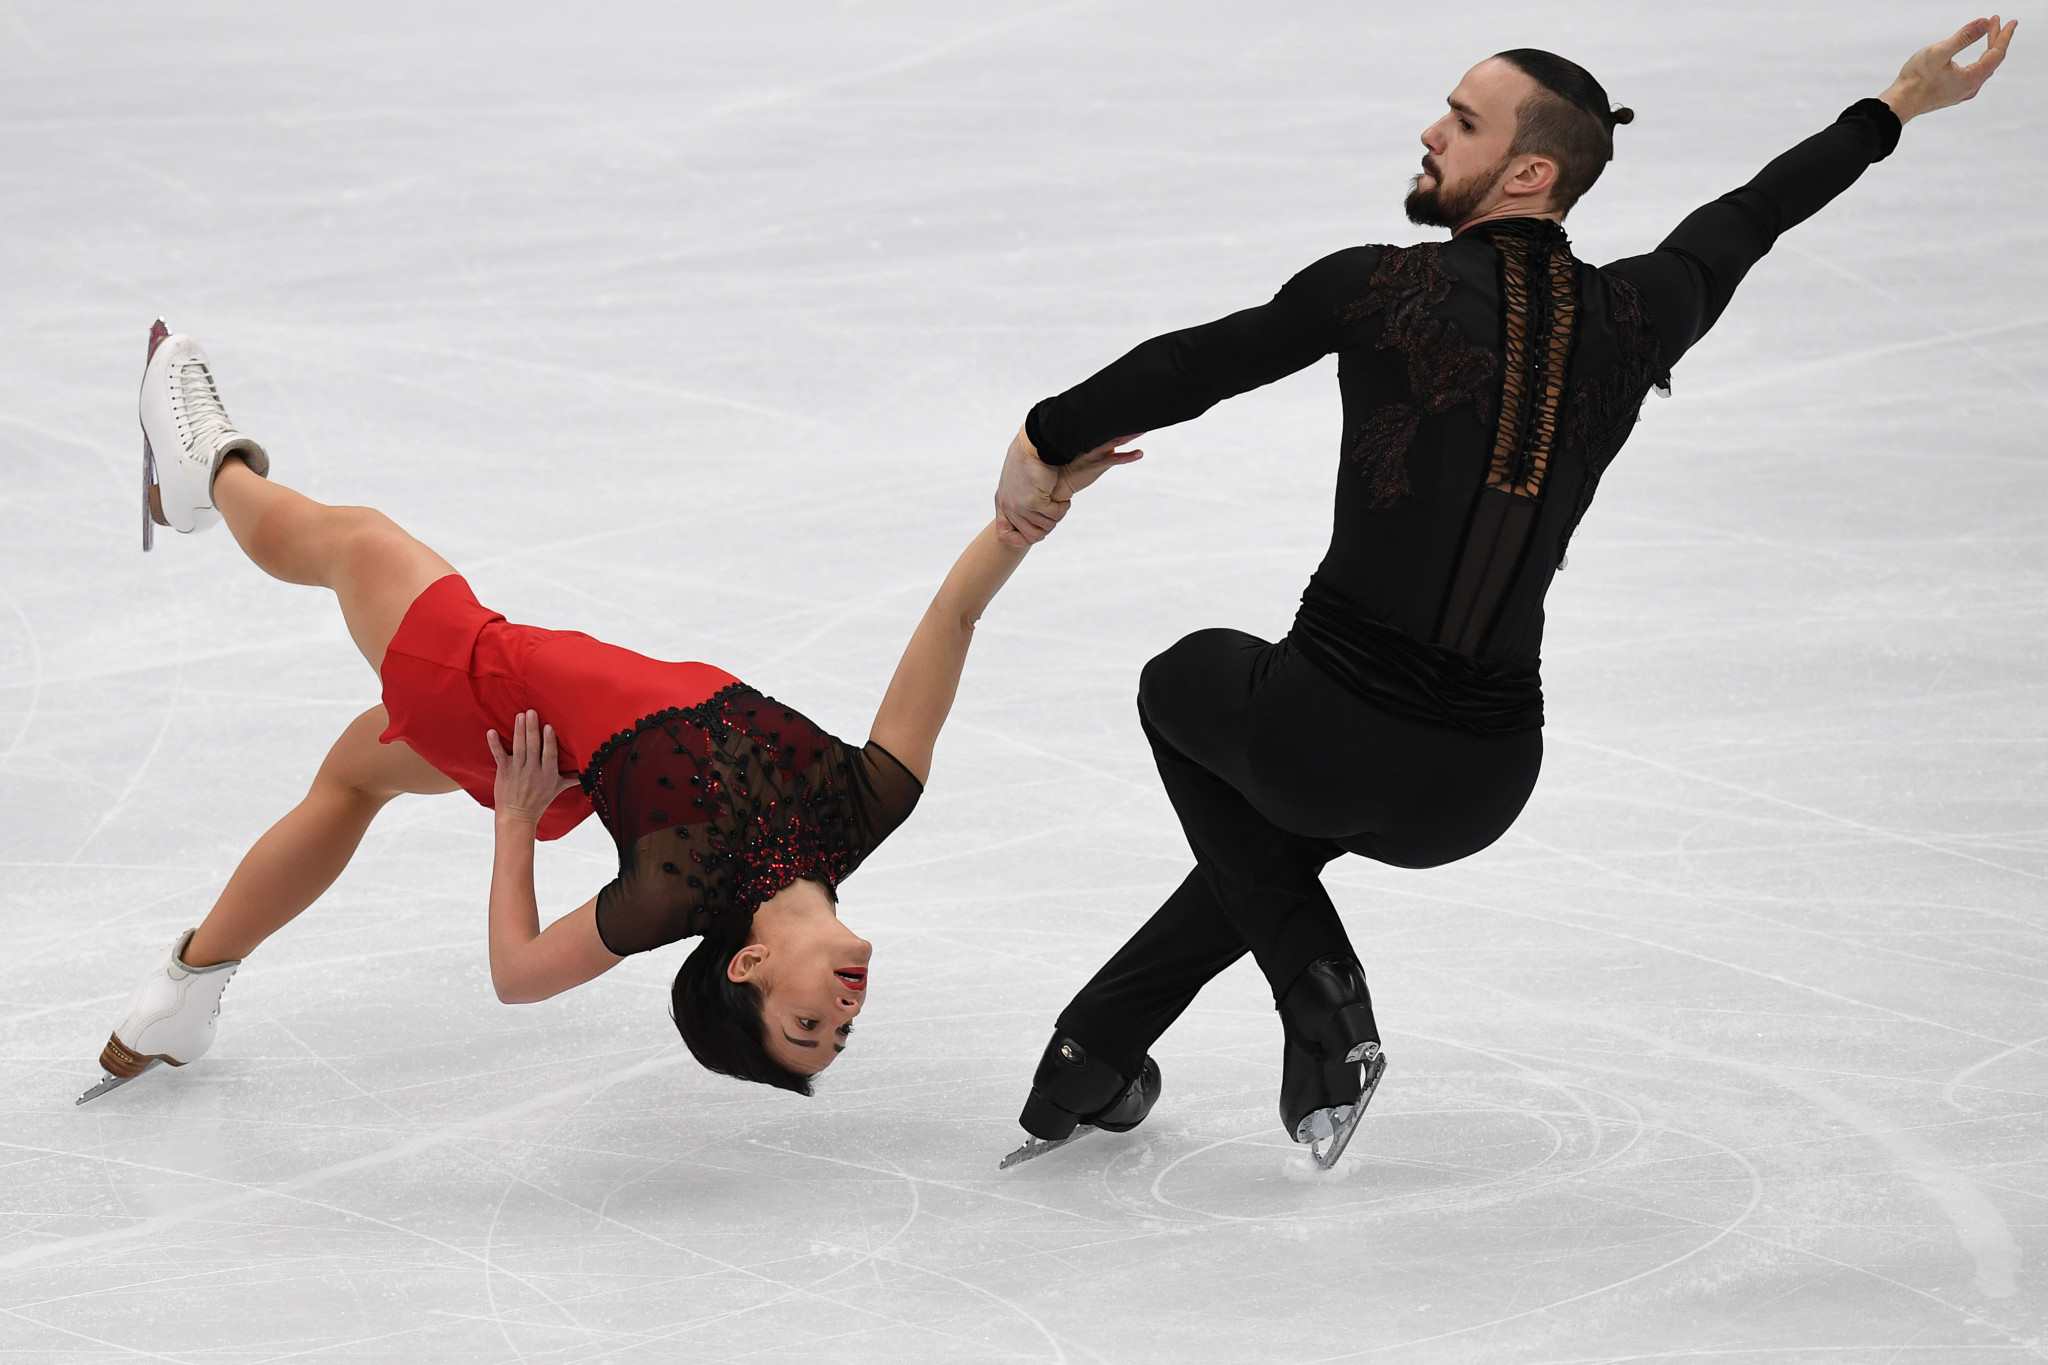 Ksenia Stolbova and Fedor Klimov were unable to compete at the Pyeongchang 2018 Winter Olympics ©Getty Images